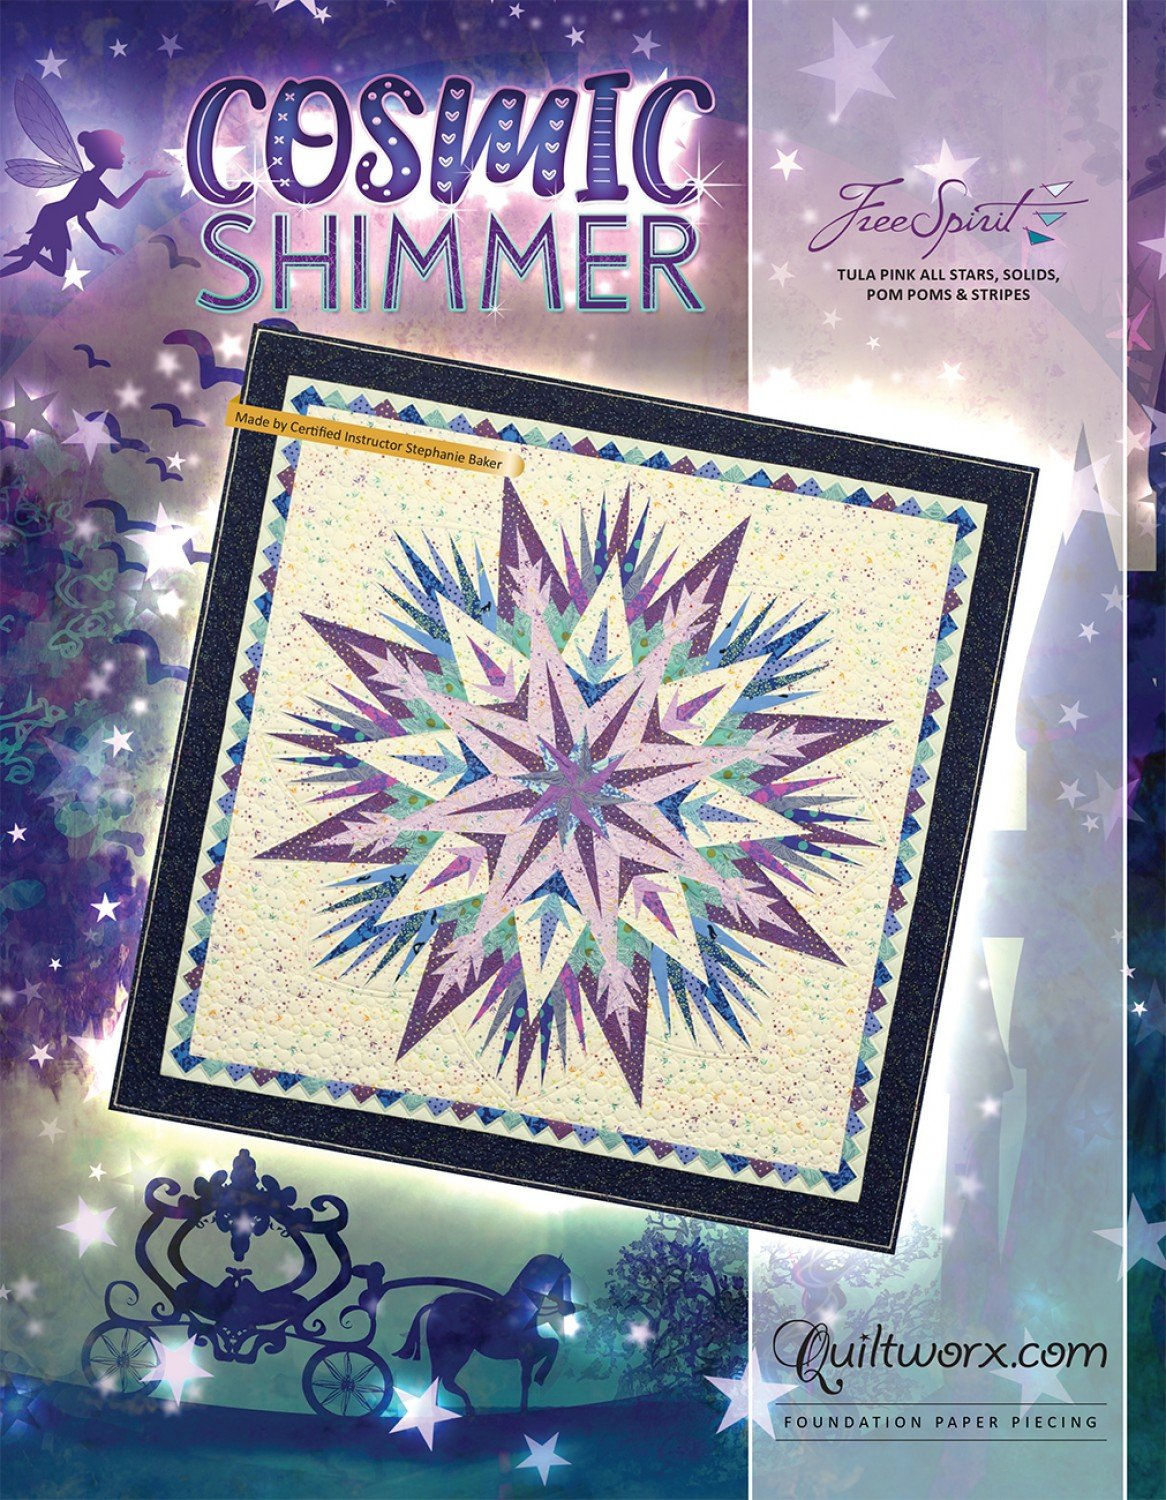 Cosmic Shimmer   ~ RELEASE DATE AUG 10/20 ~